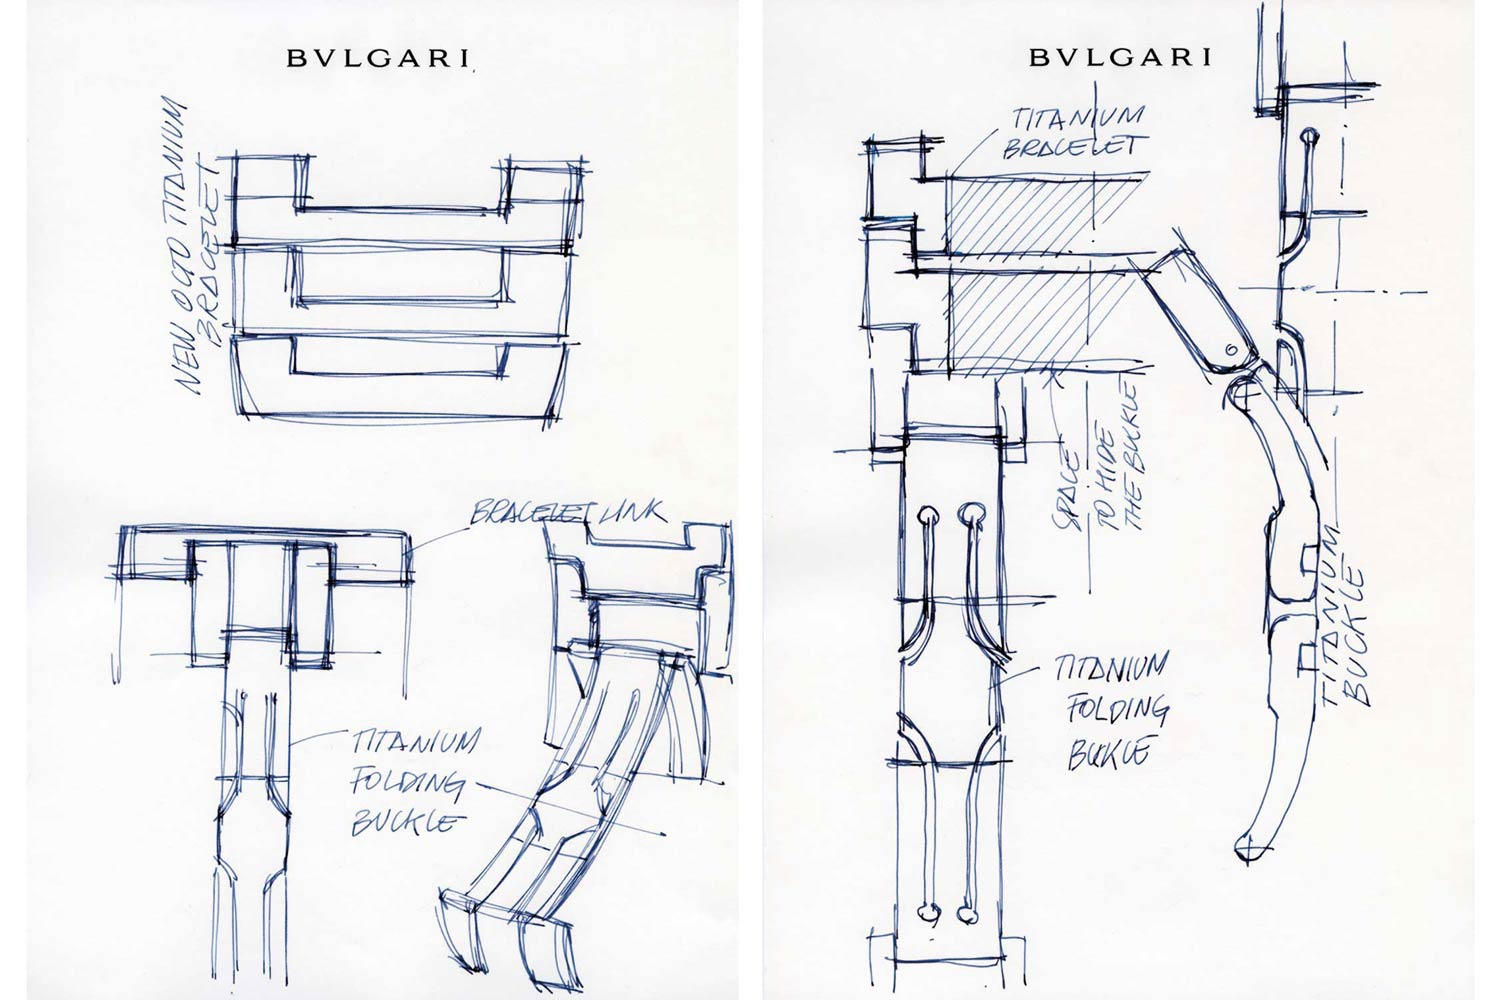 Drawings showing the conception of the Octo Finissimo's bracelet